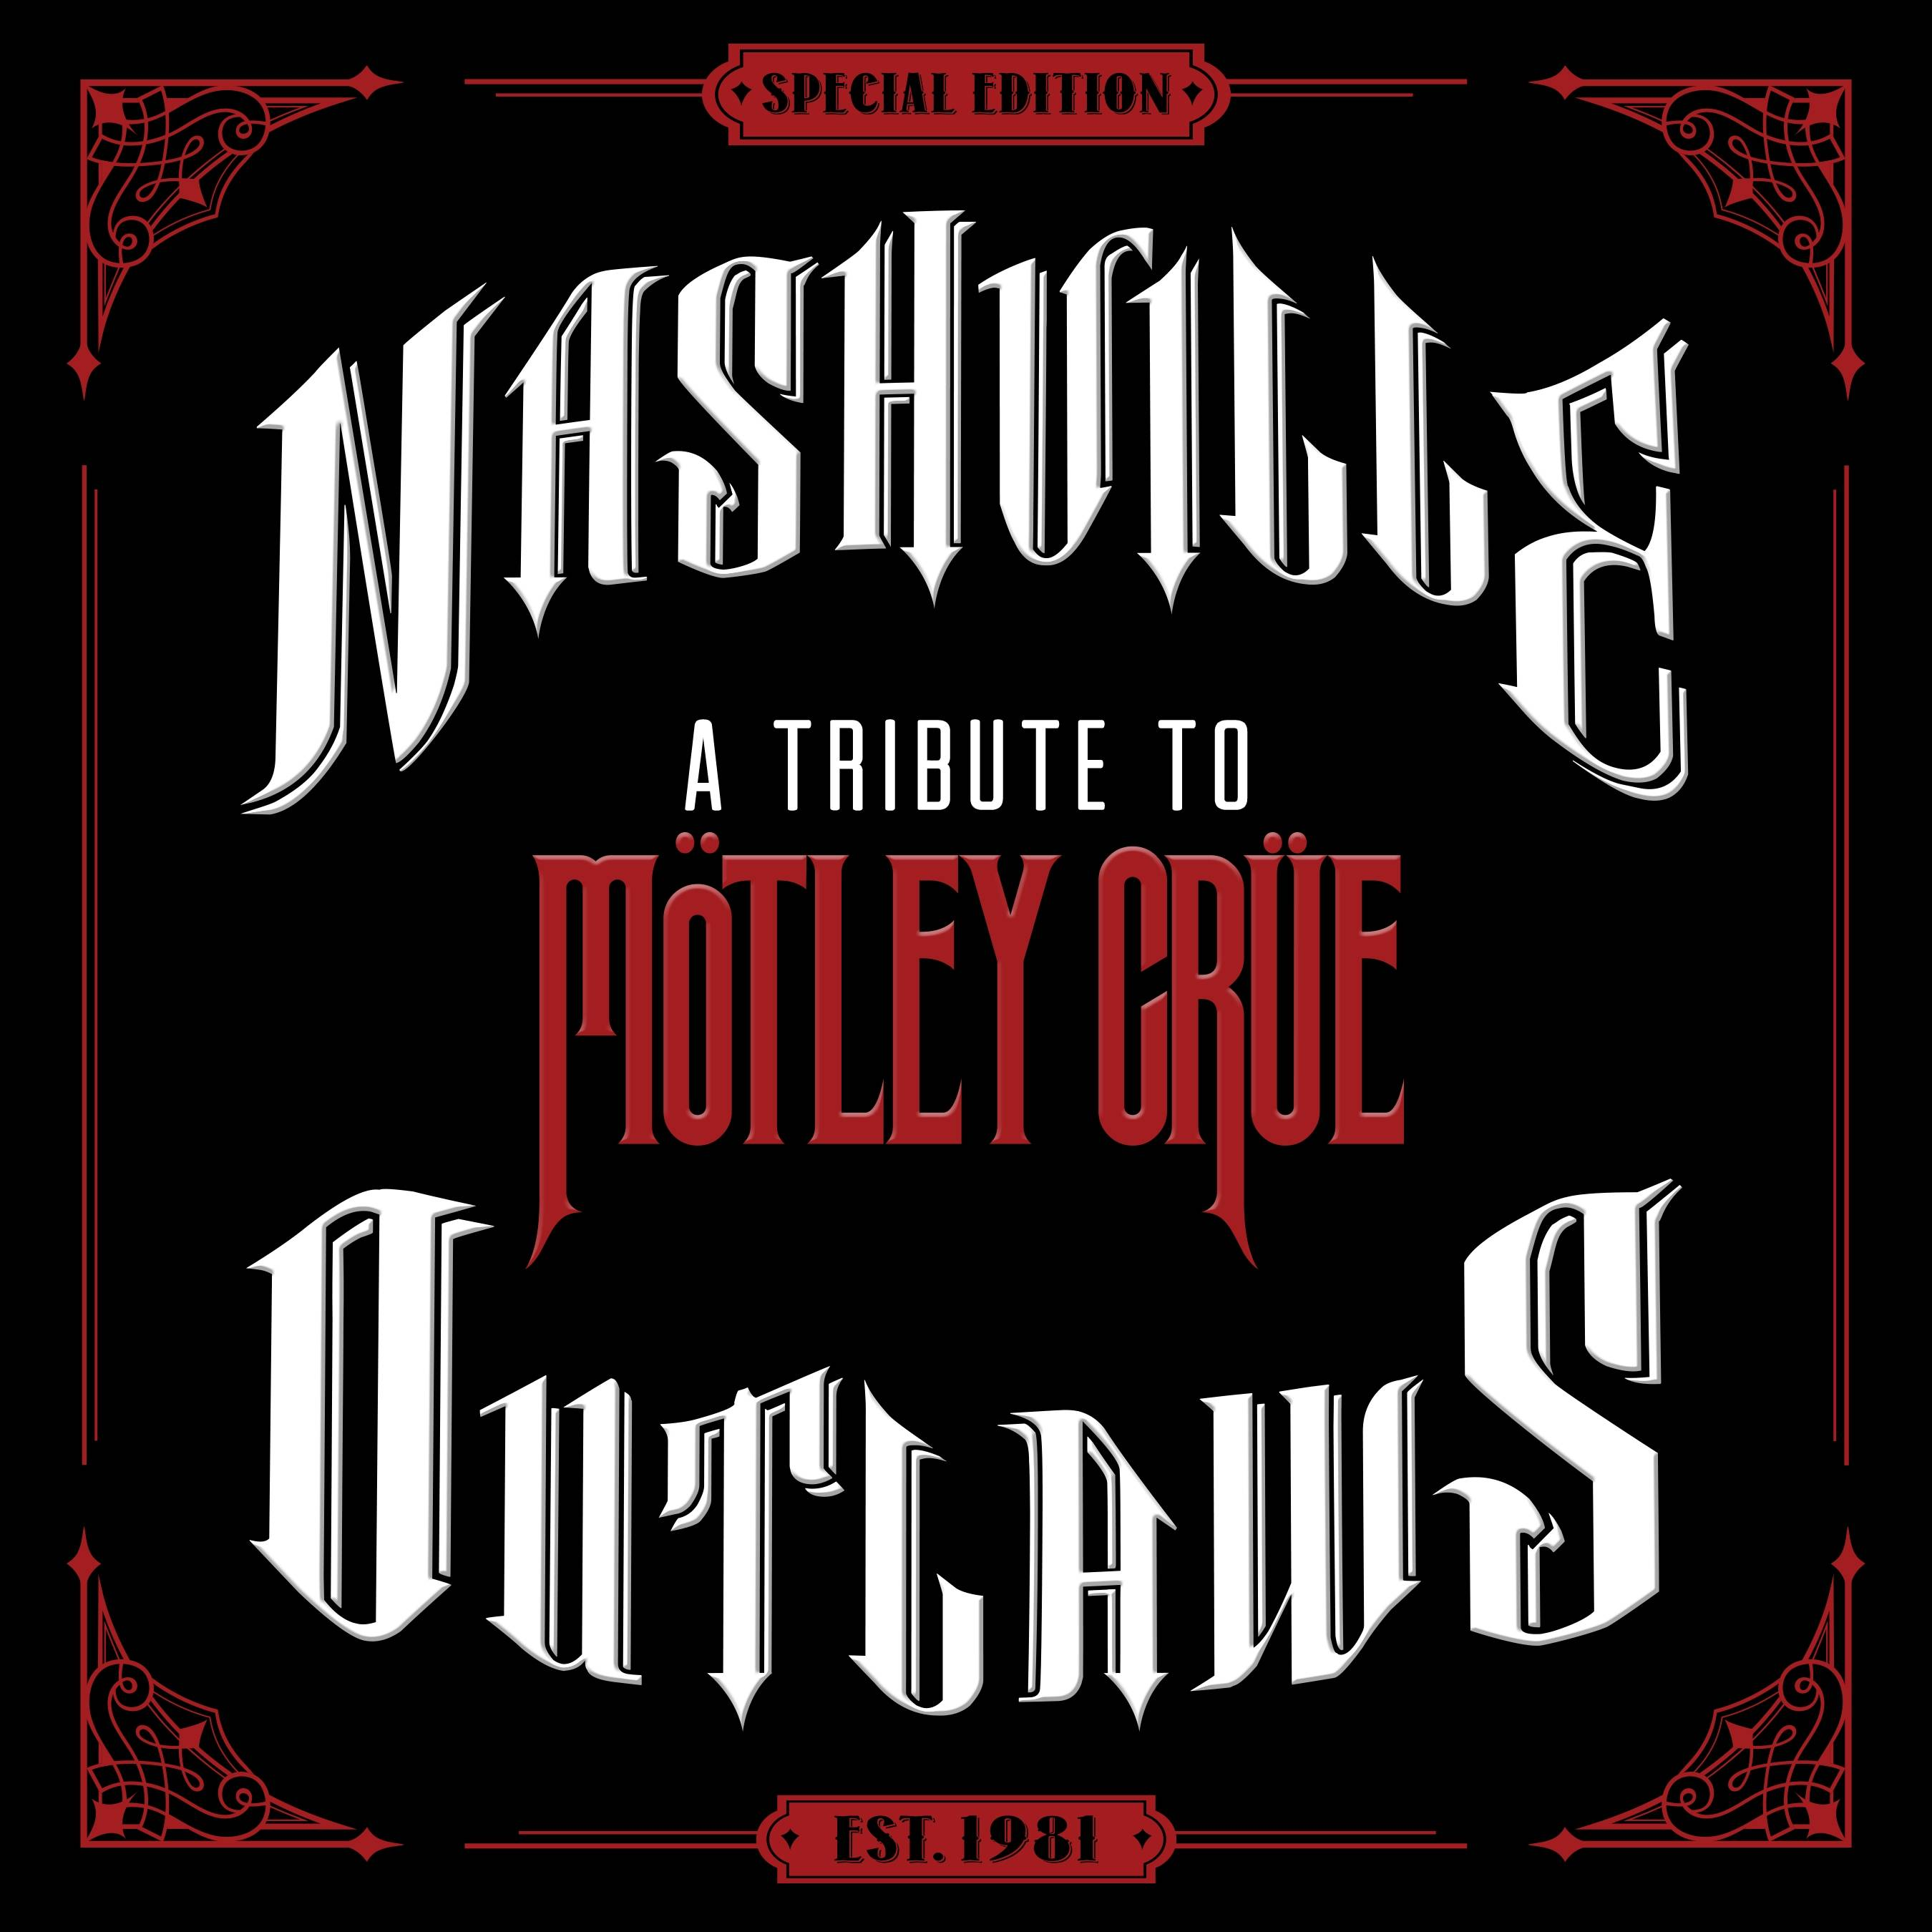 Country artists rock out for Motley Crue